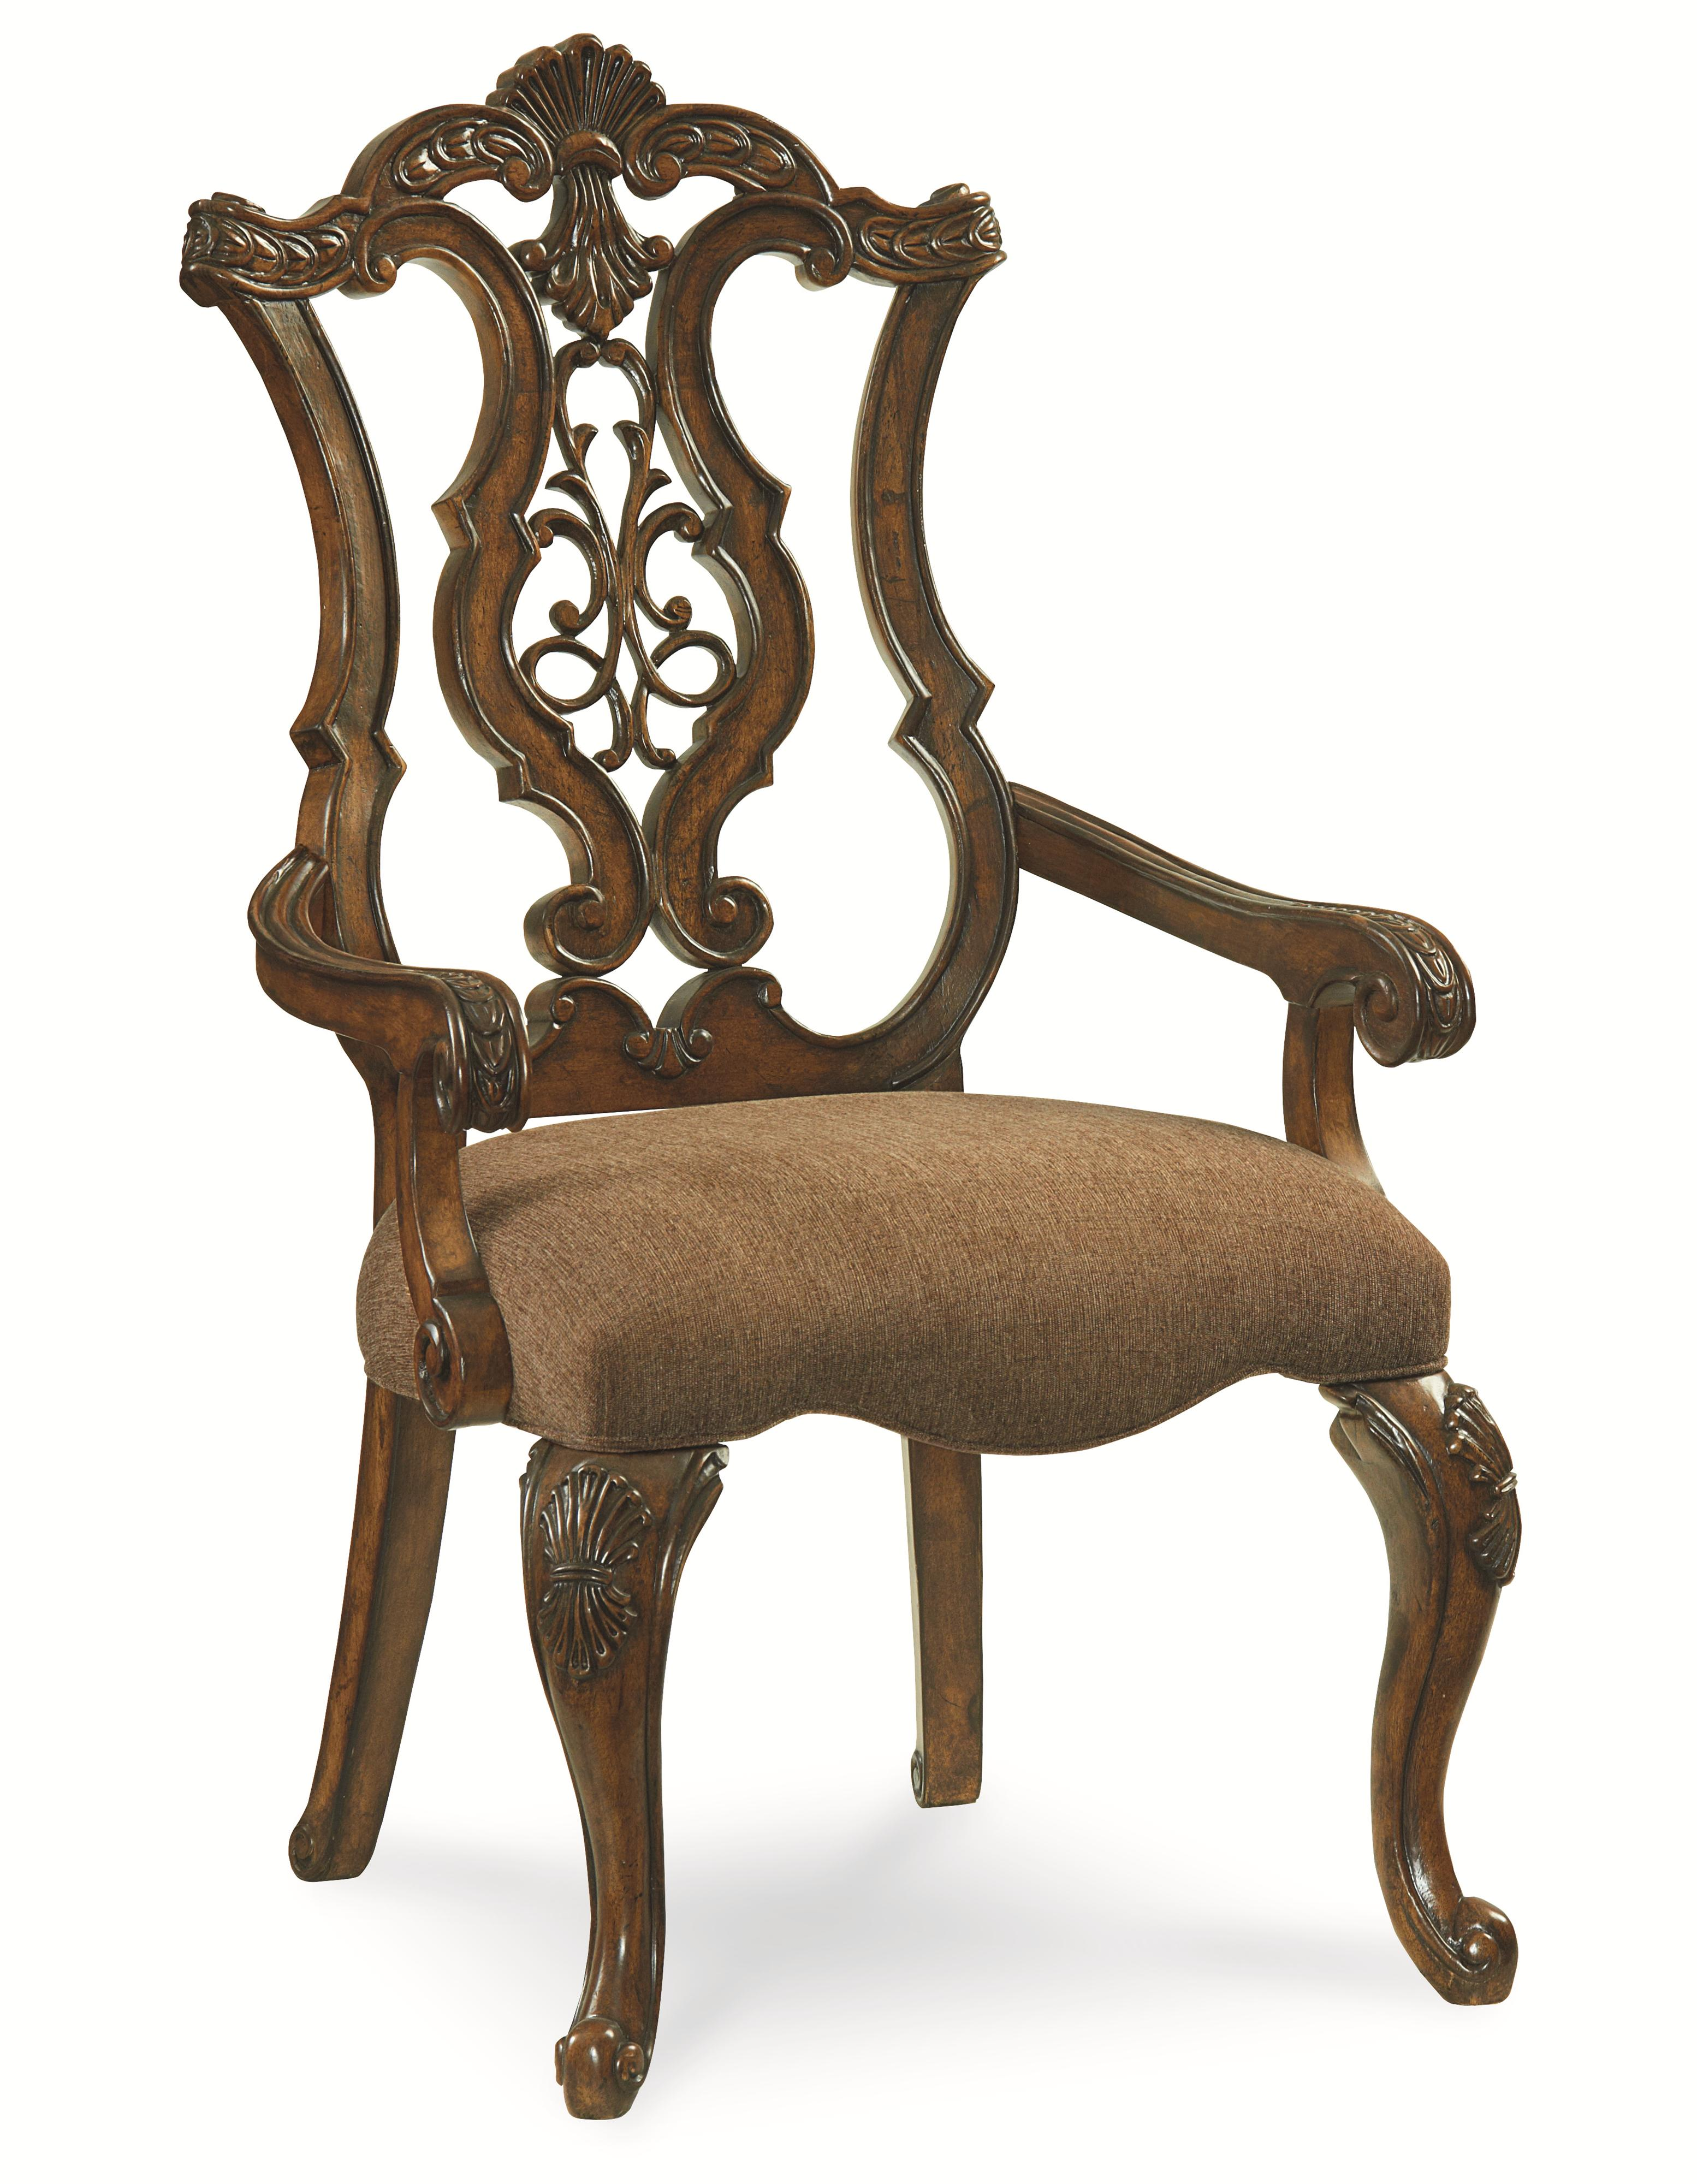 Legacy Classic Pemberleigh Pierced Back Arm Chair - Item Number: 3100-141 KD